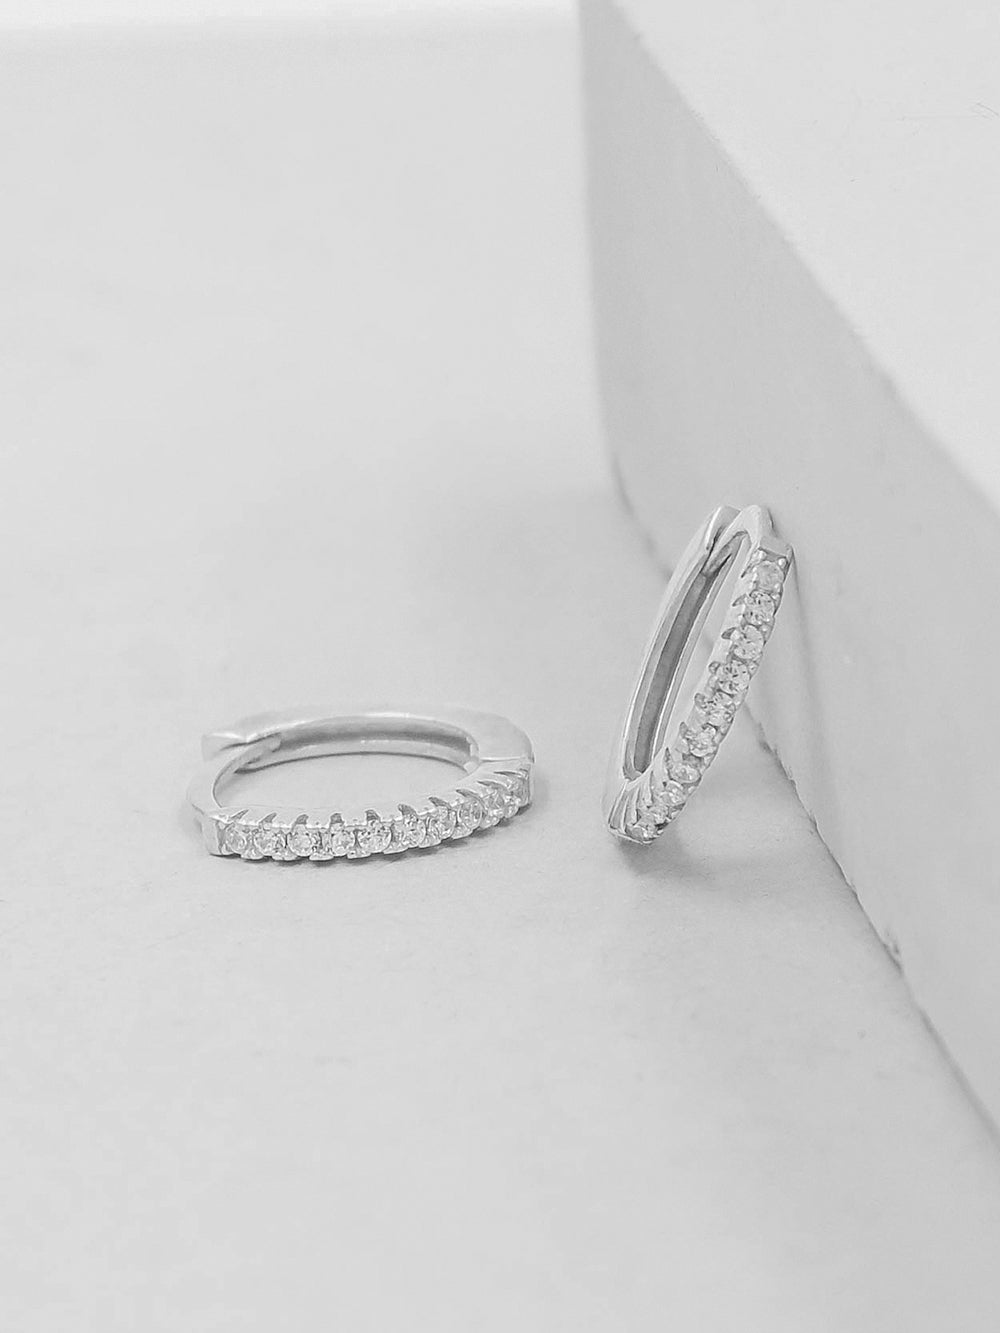 Silver Super Dainty Hoop Huggie Earrings with Tiny Round Cubic Zirconia by The Faint Hearted Jewelry